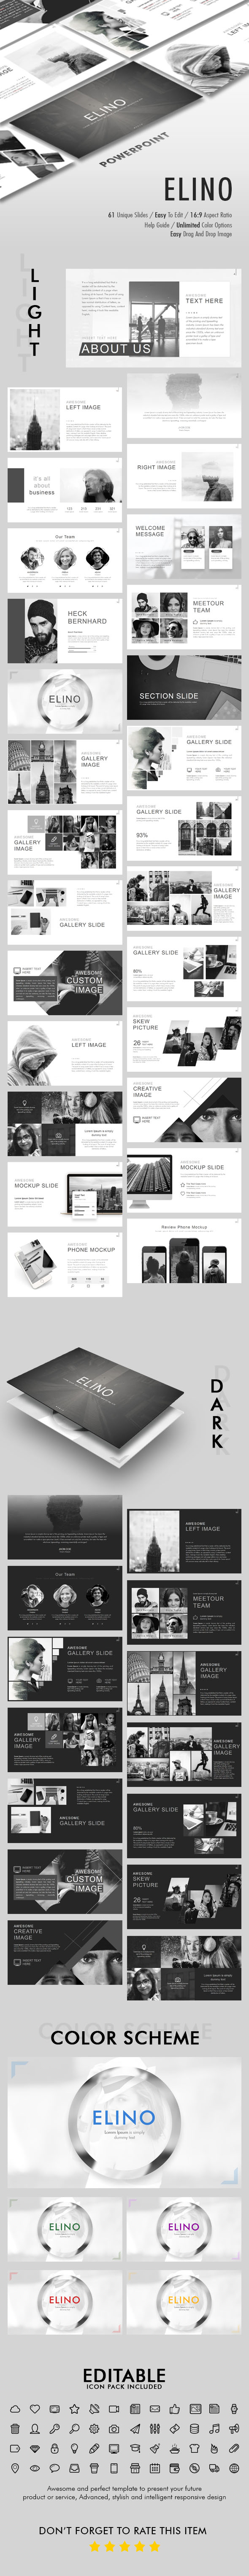 Elino Powerpoint Template - Business PowerPoint Templates